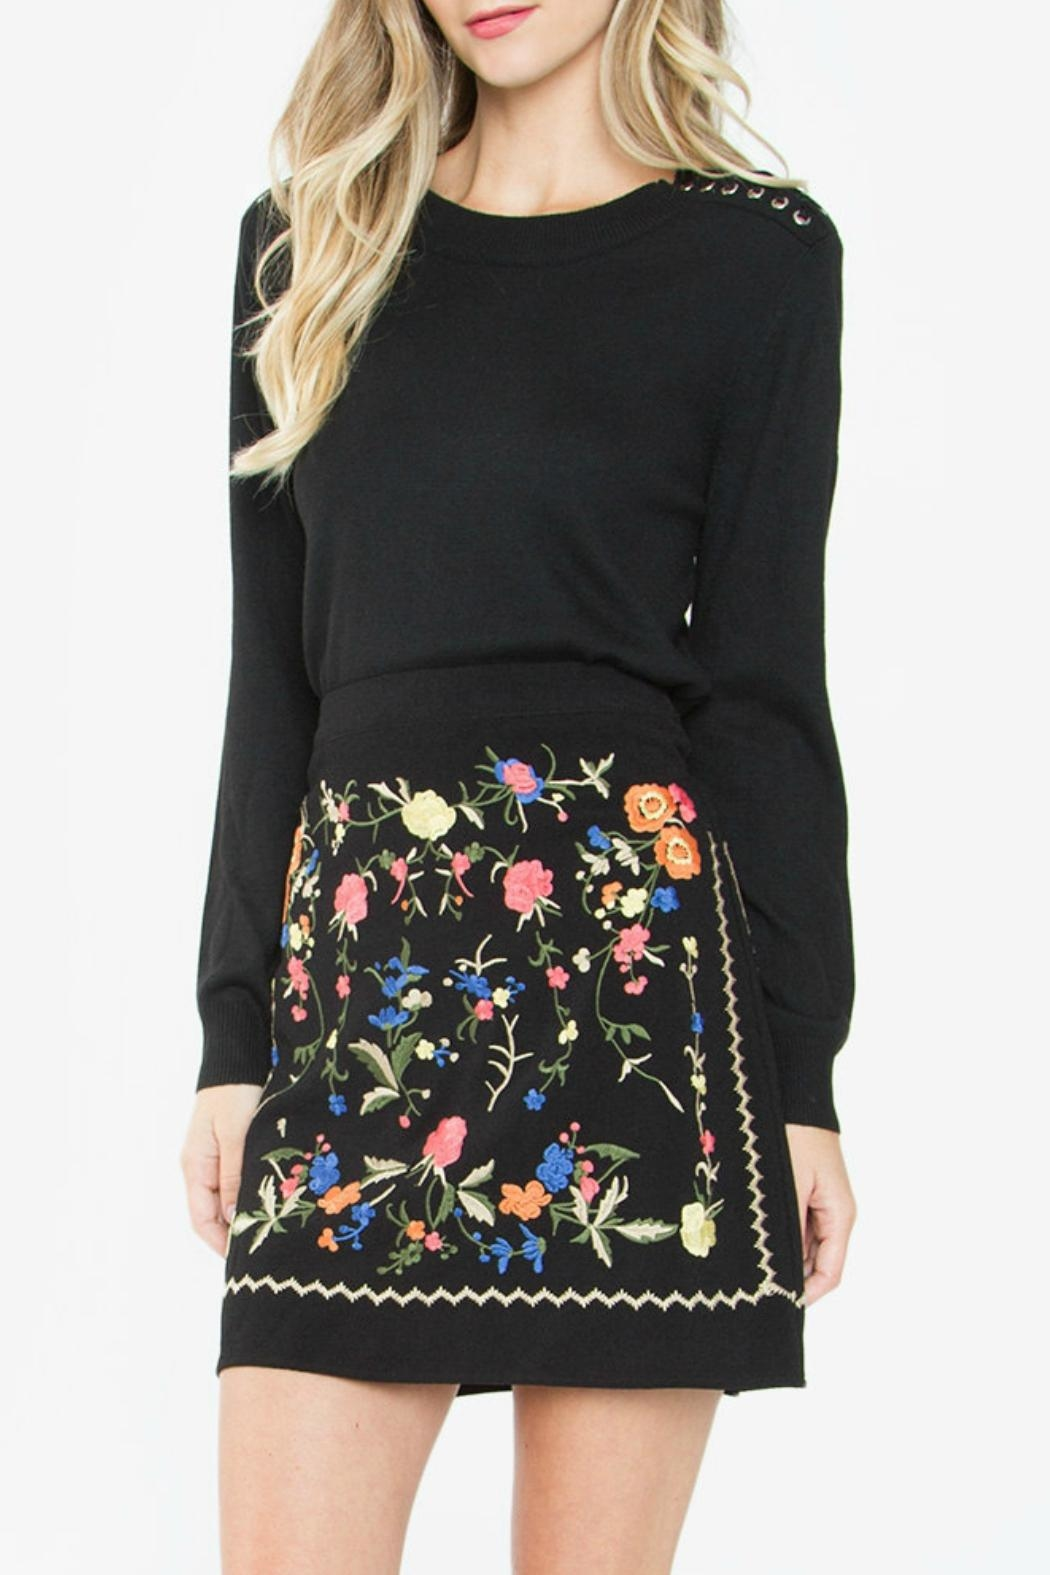 Sugar Lips Black Embroidered Skirt - Side Cropped Image